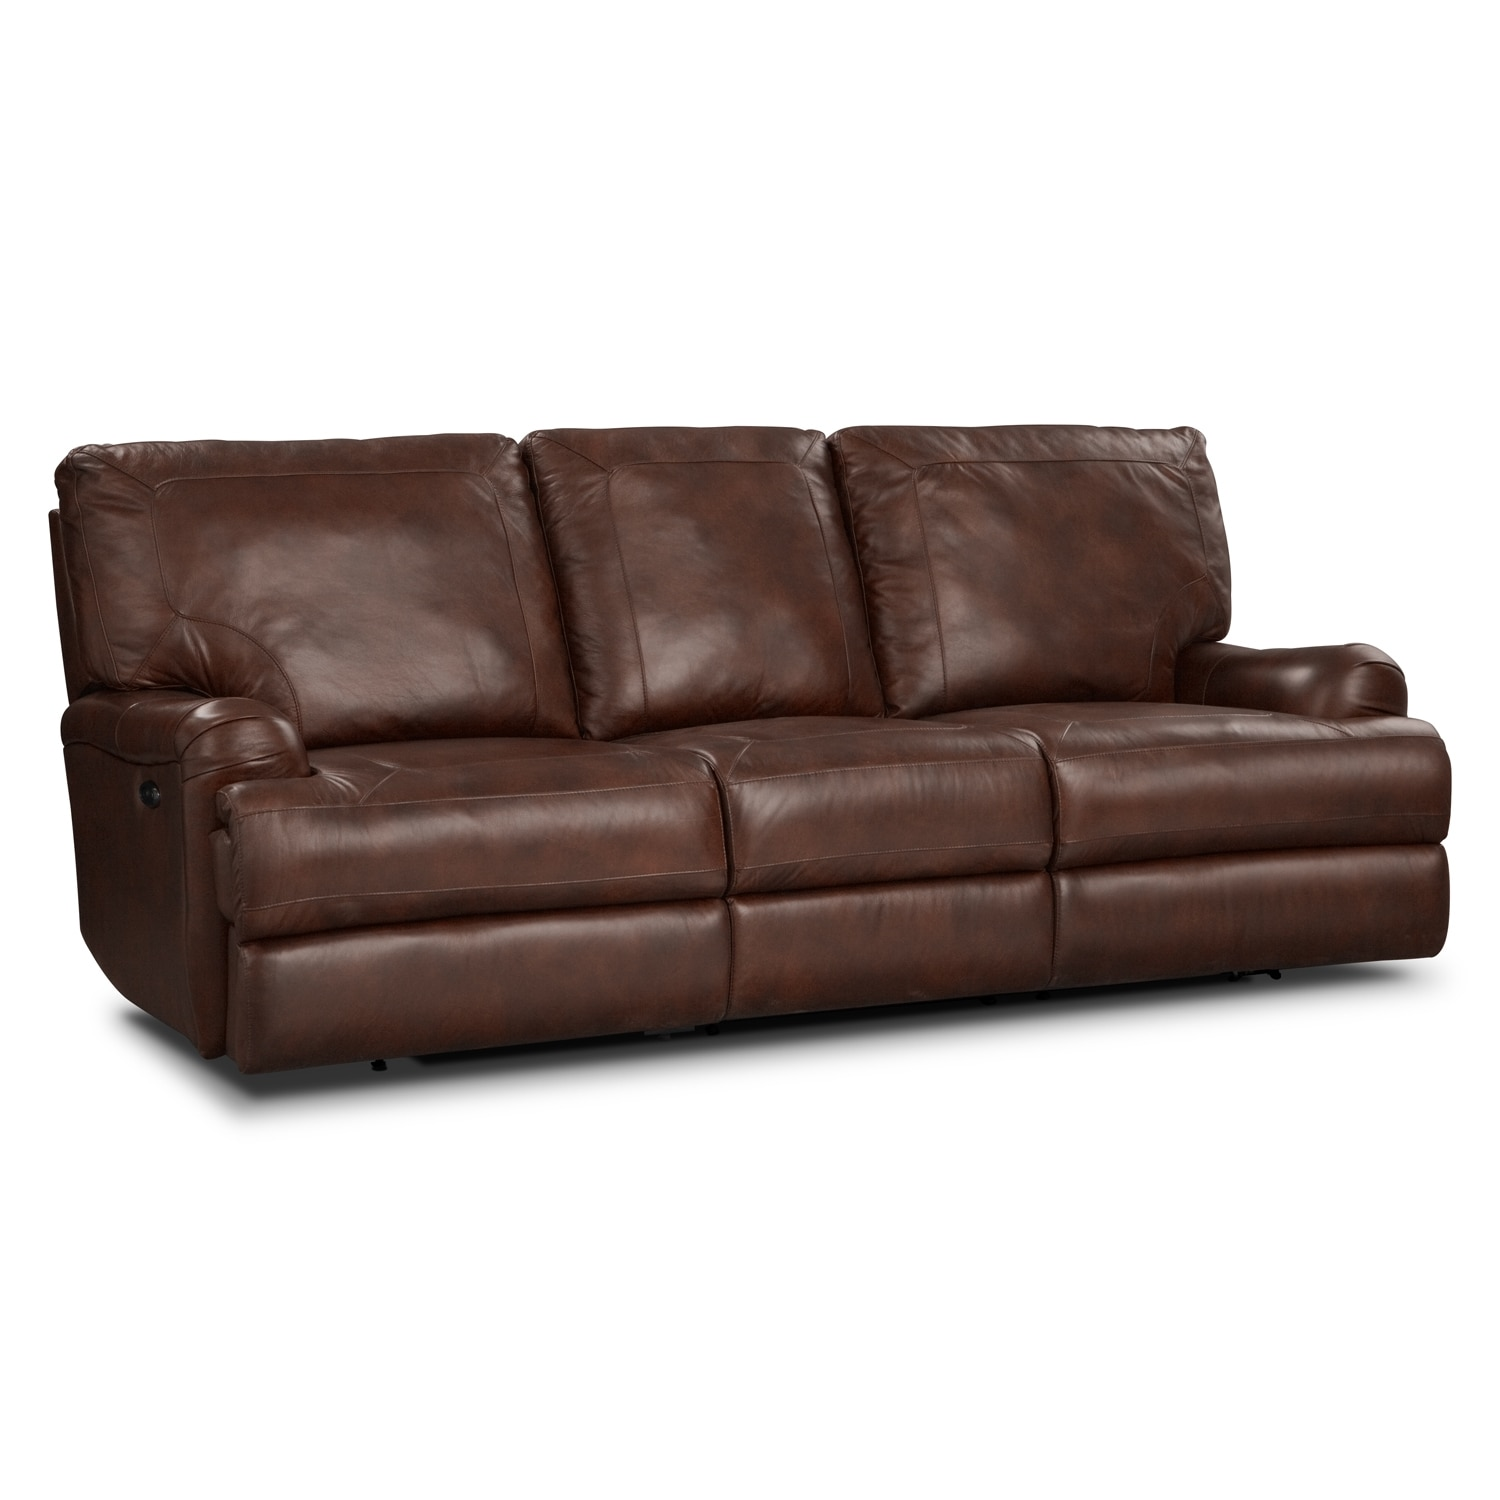 Kingsway leather power reclining sofa value city furniture Leather reclining sofa loveseat